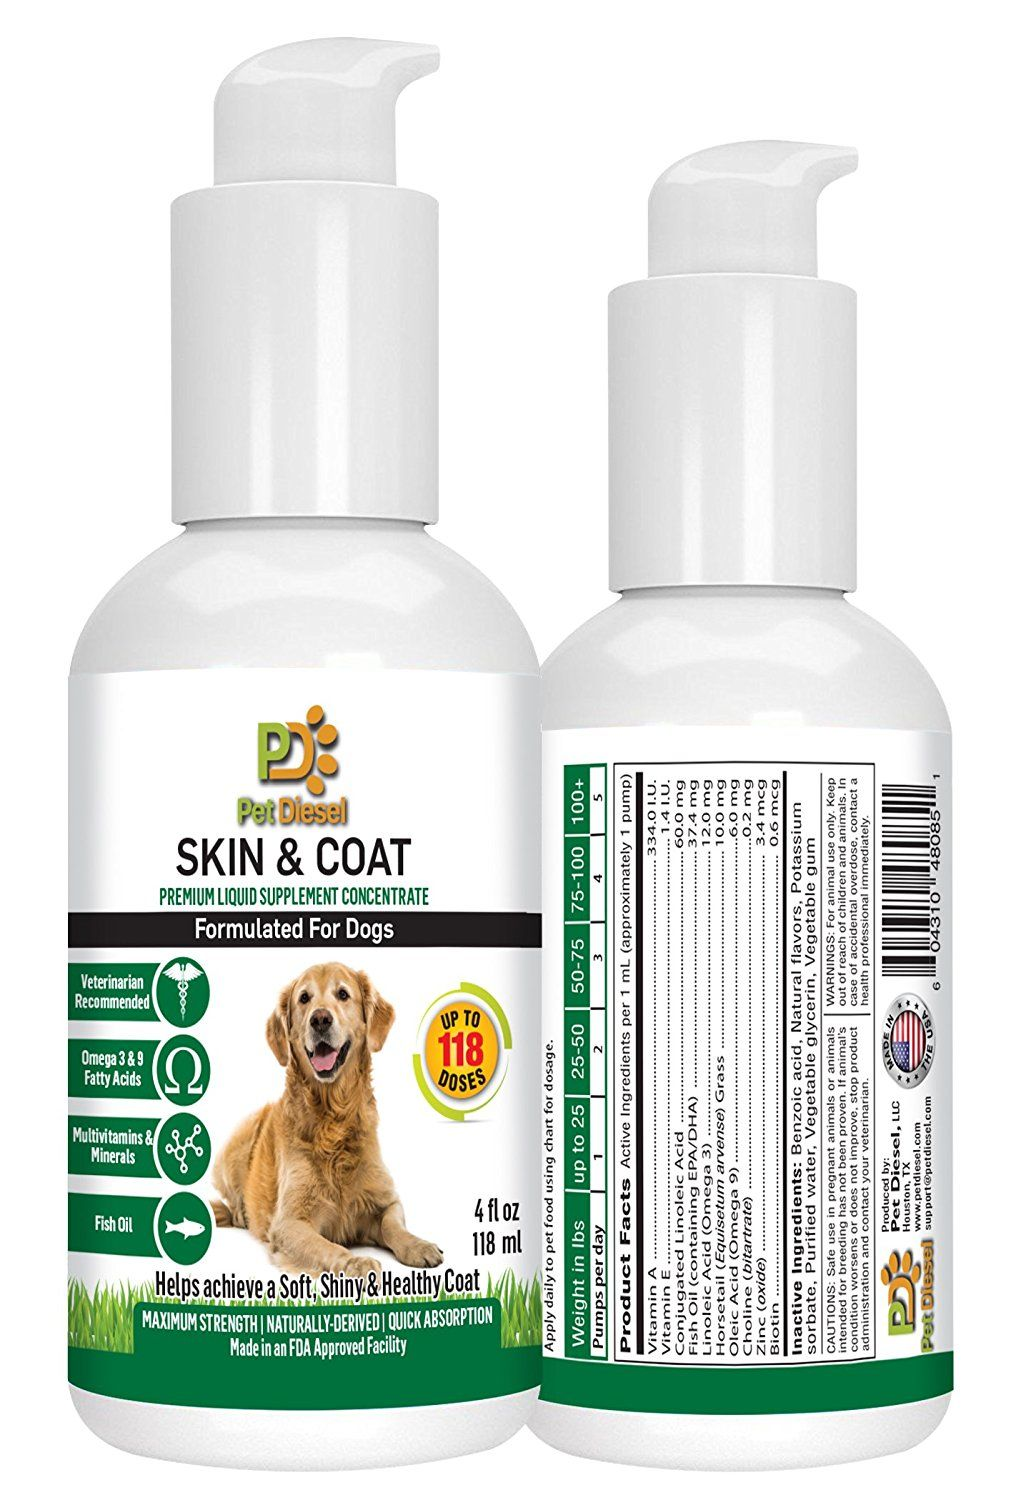 Skin and Coat Liquid Supplement For Dogs By Pet Diesel